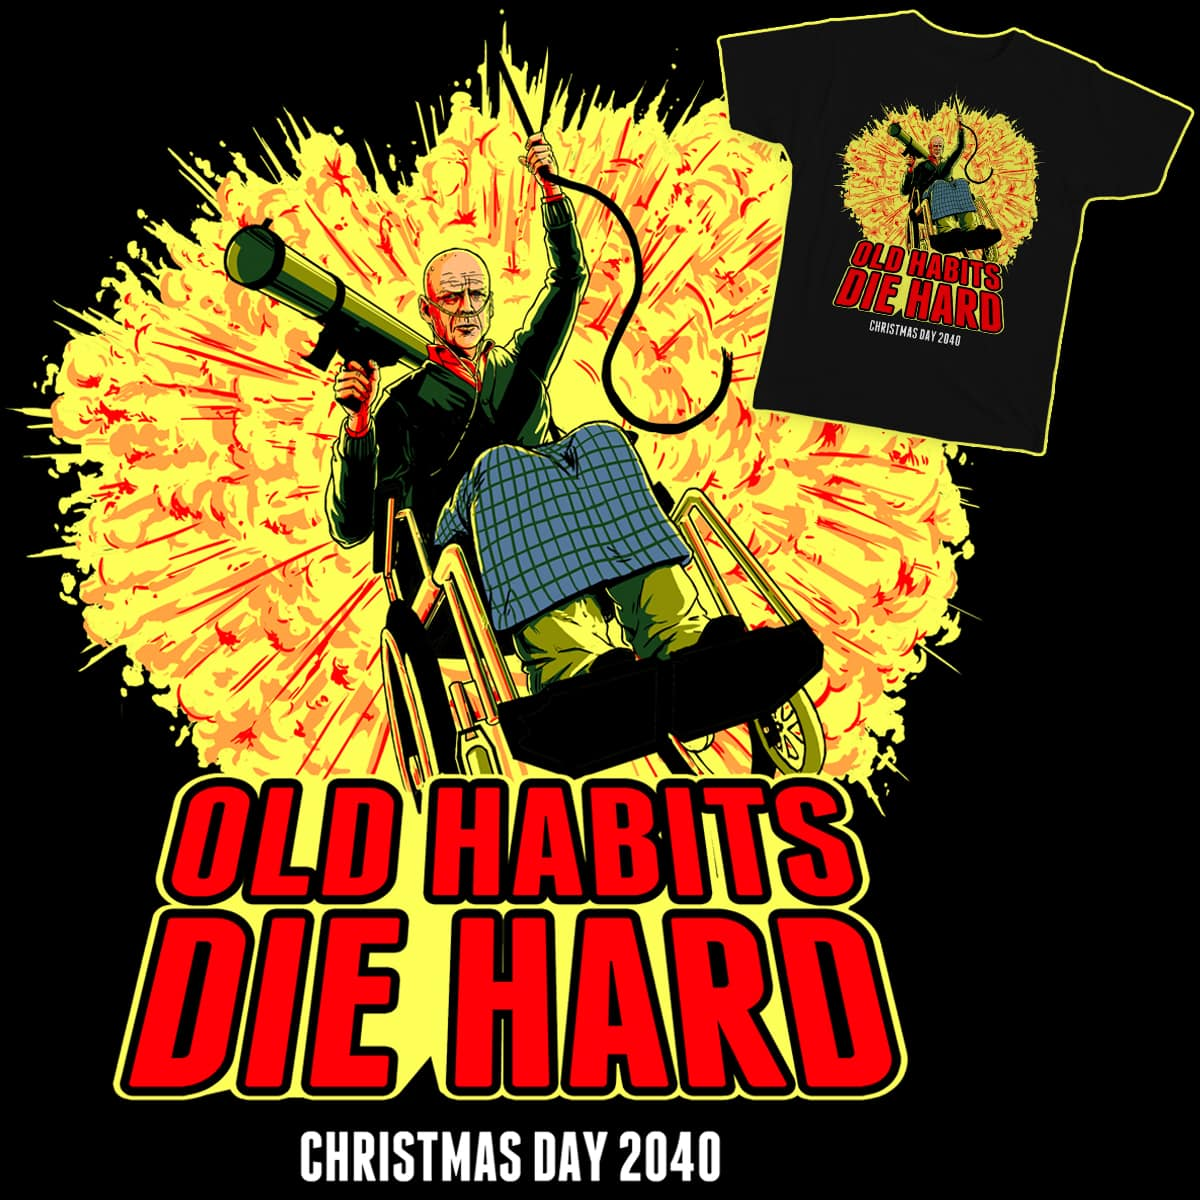 Old Habits Die Hard by finnathan on Threadless